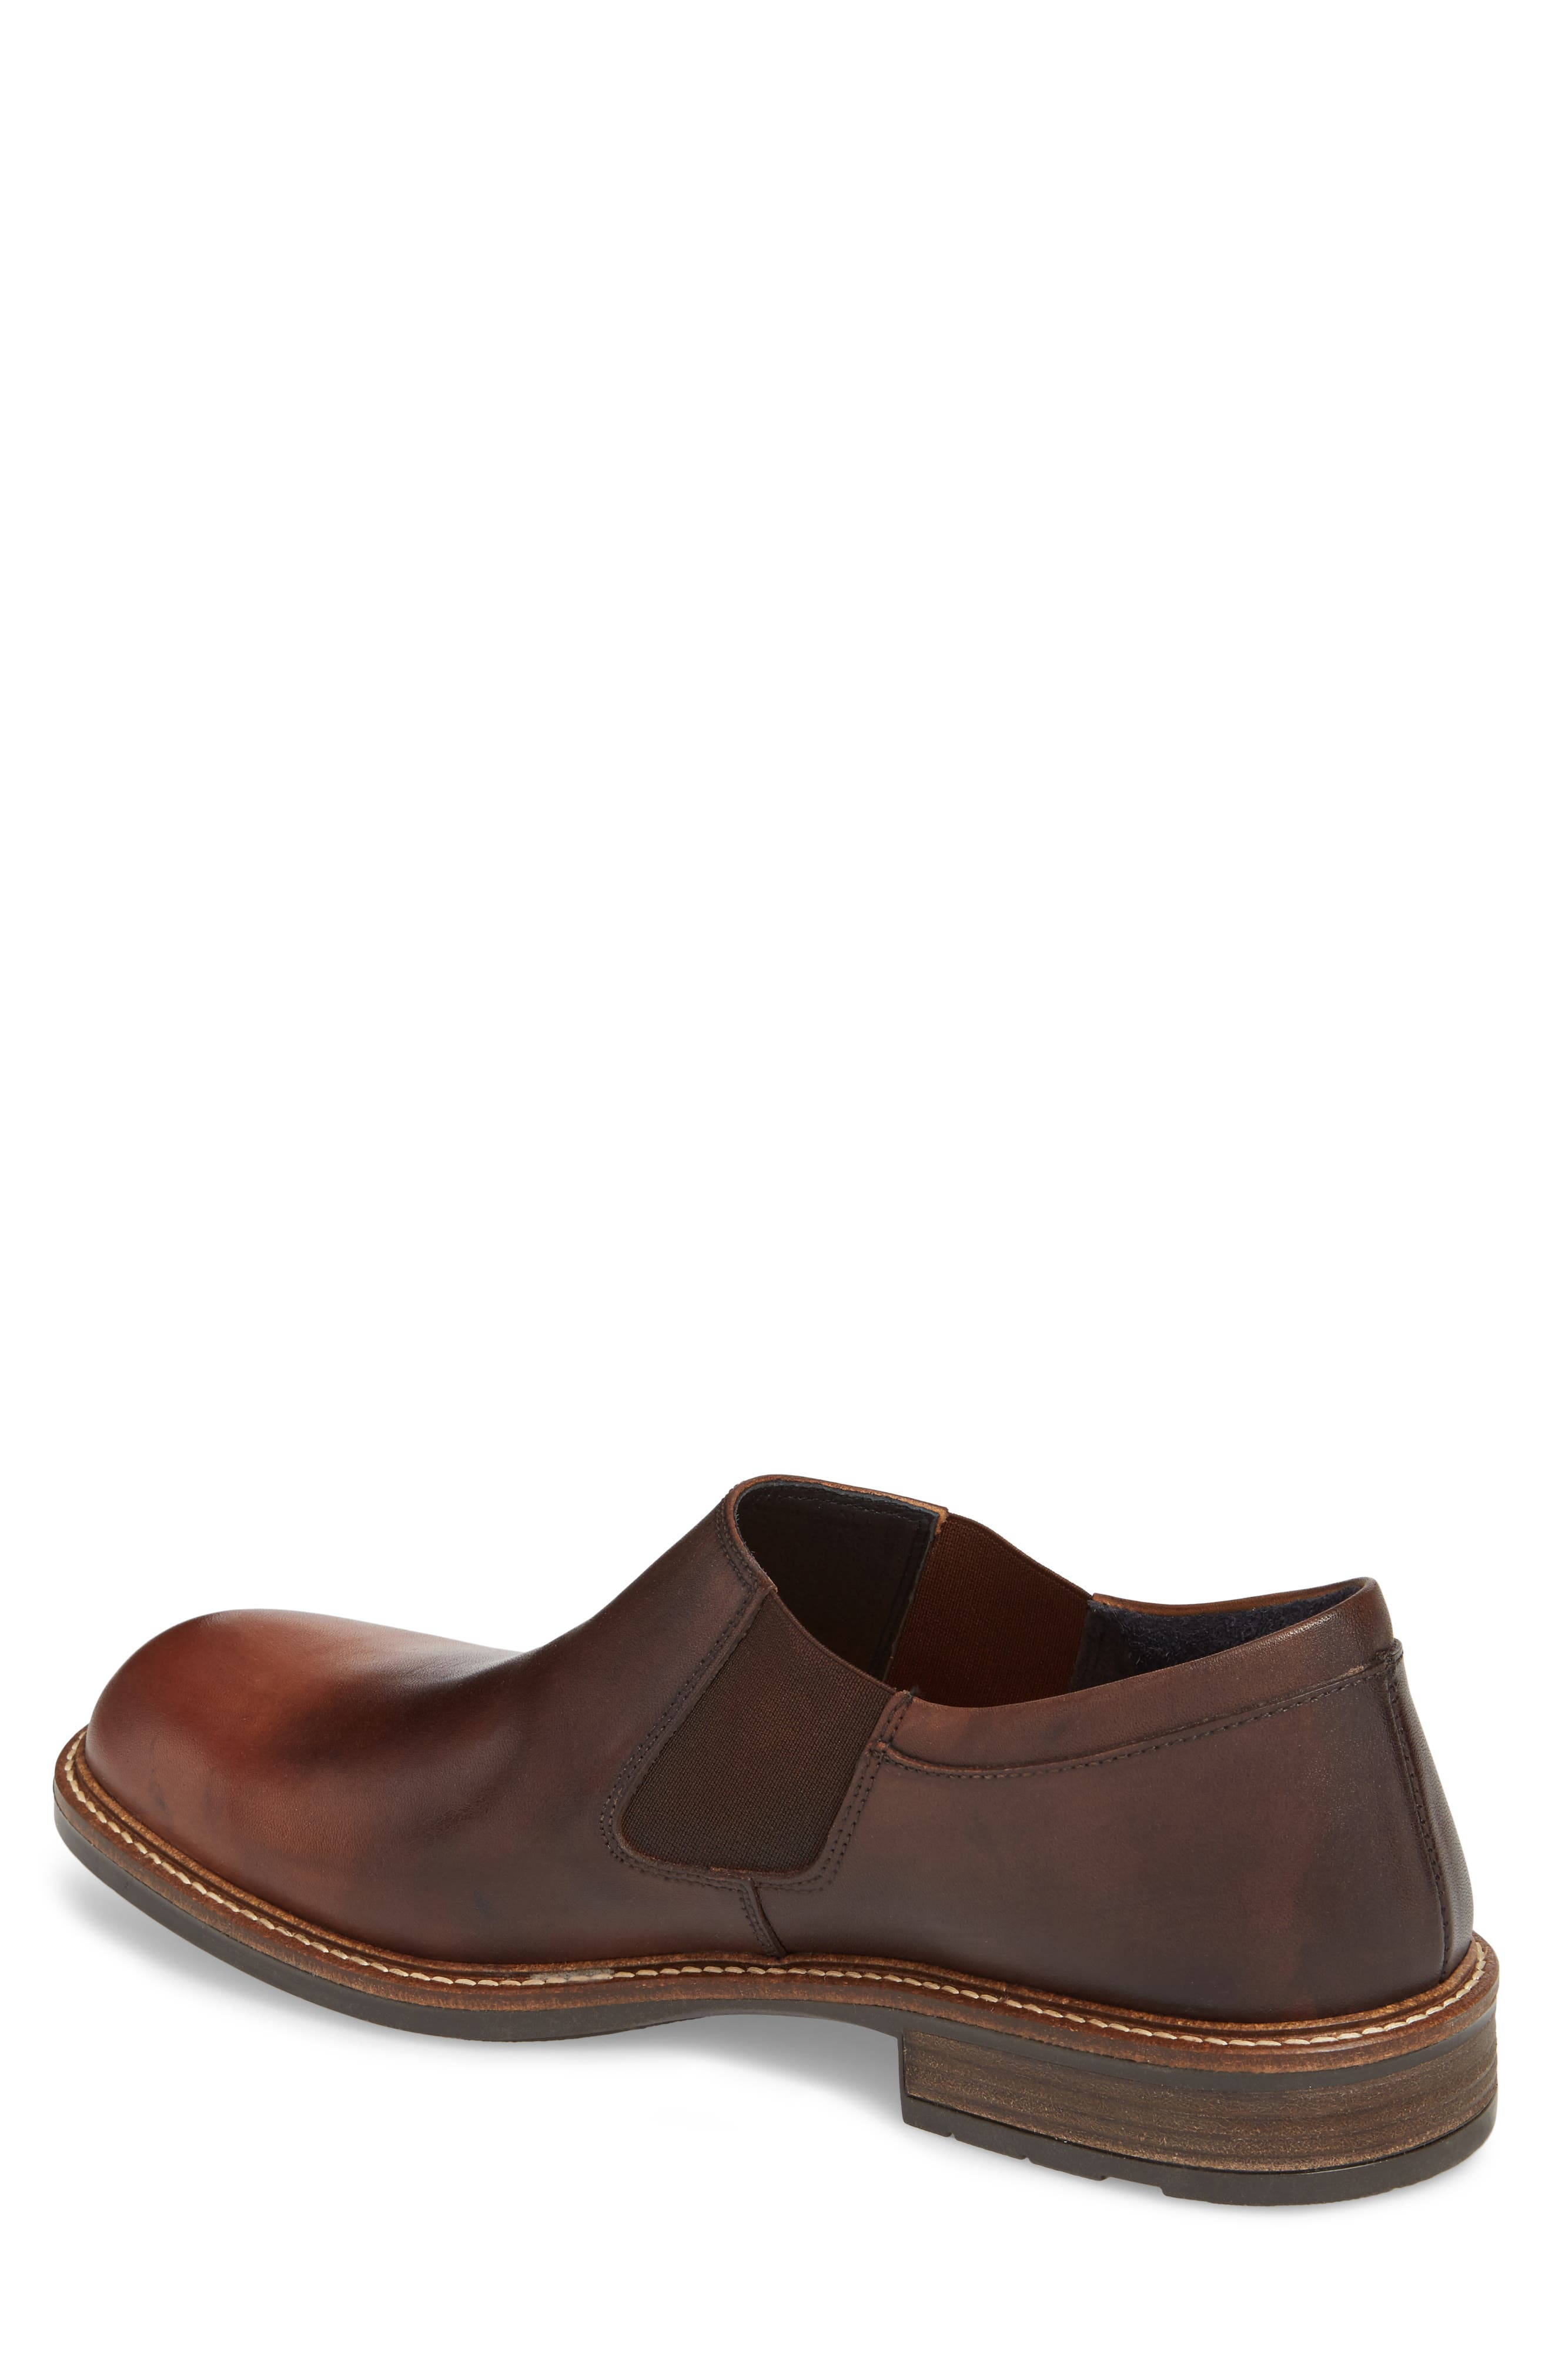 Director Venetian Loafer,                             Alternate thumbnail 2, color,                             BROWN GRADIENT LEATHER